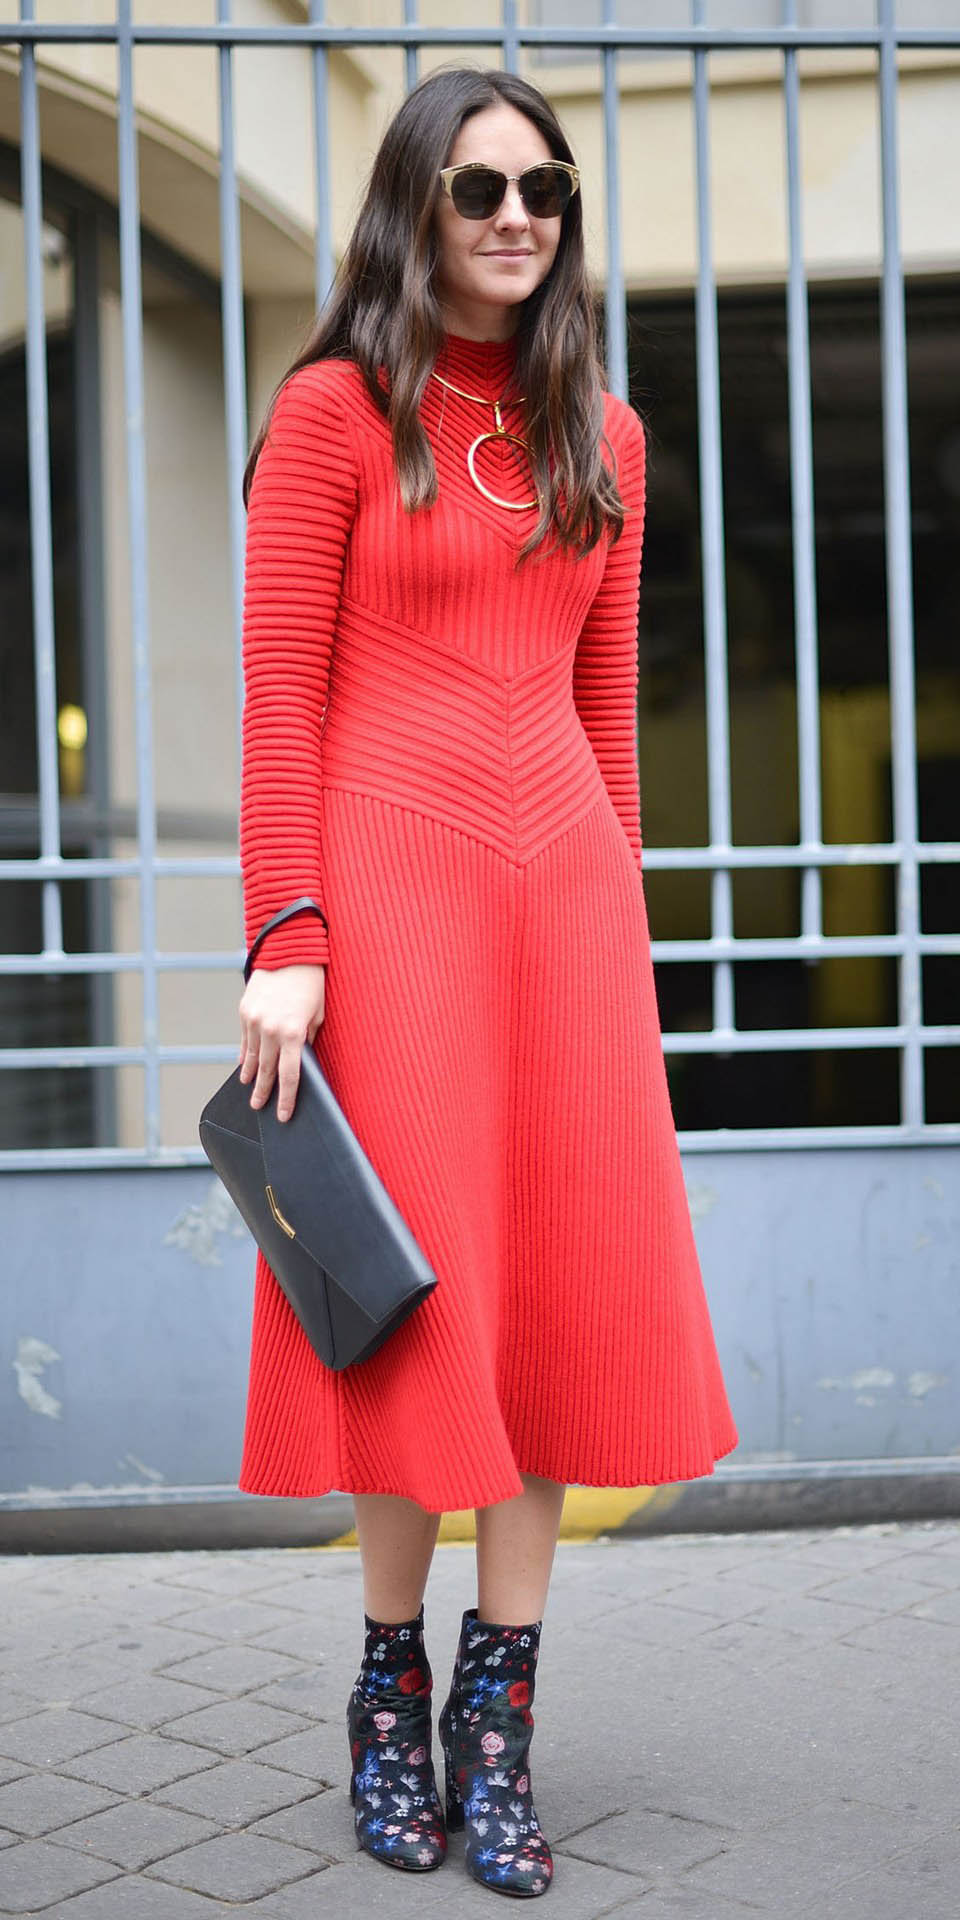 red-dress-midi-black-shoe-booties-black-bag-clutch-necklace-sun-hairr-sweater-howtowear-valentinesday-outfit-fall-winter-dinner.jpg